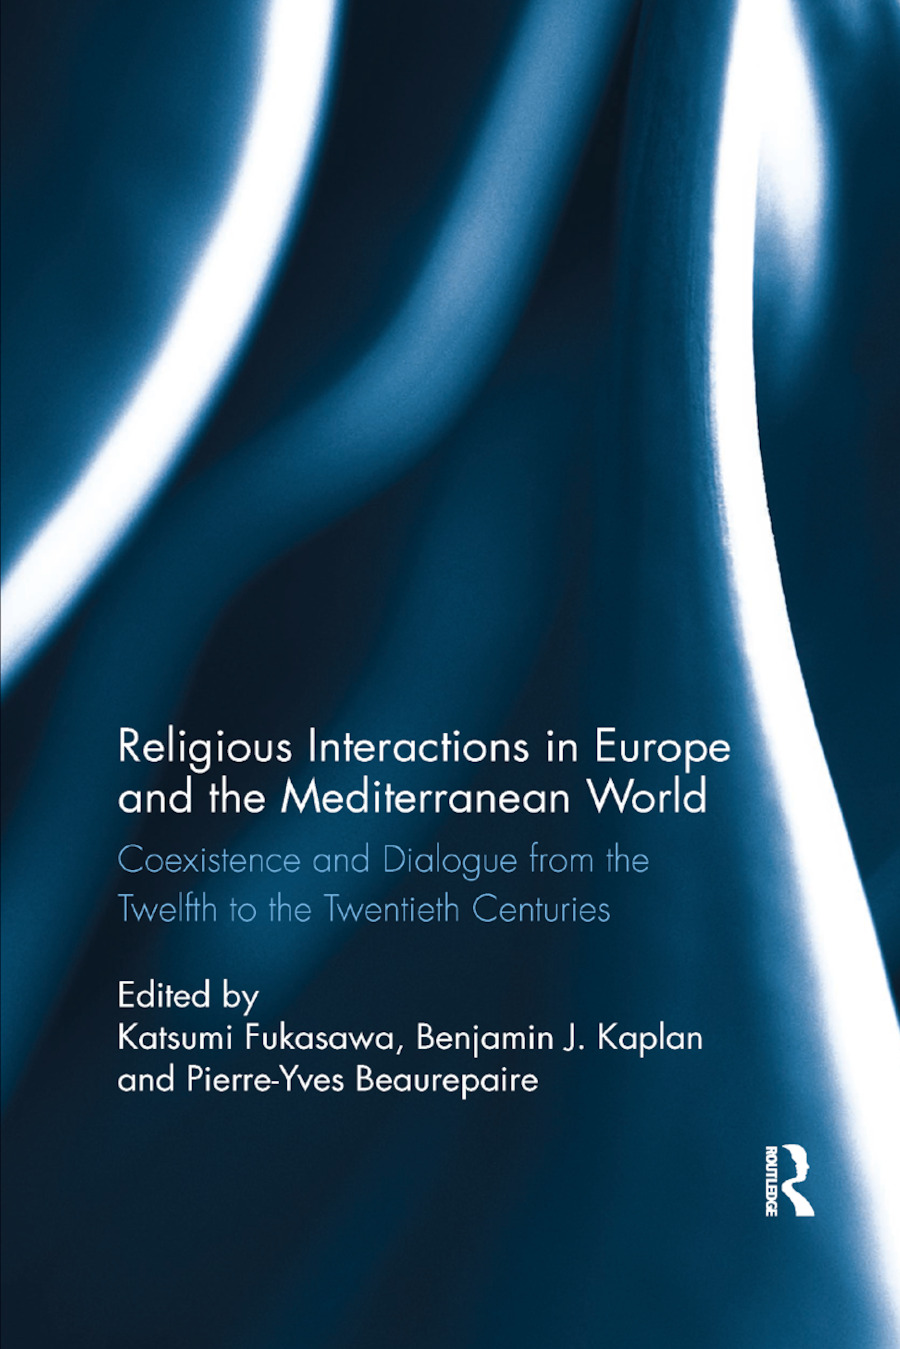 Religious Interactions in Europe and the Mediterranean World: Coexistence and Dialogue from the 12th to the 20th Centuries book cover